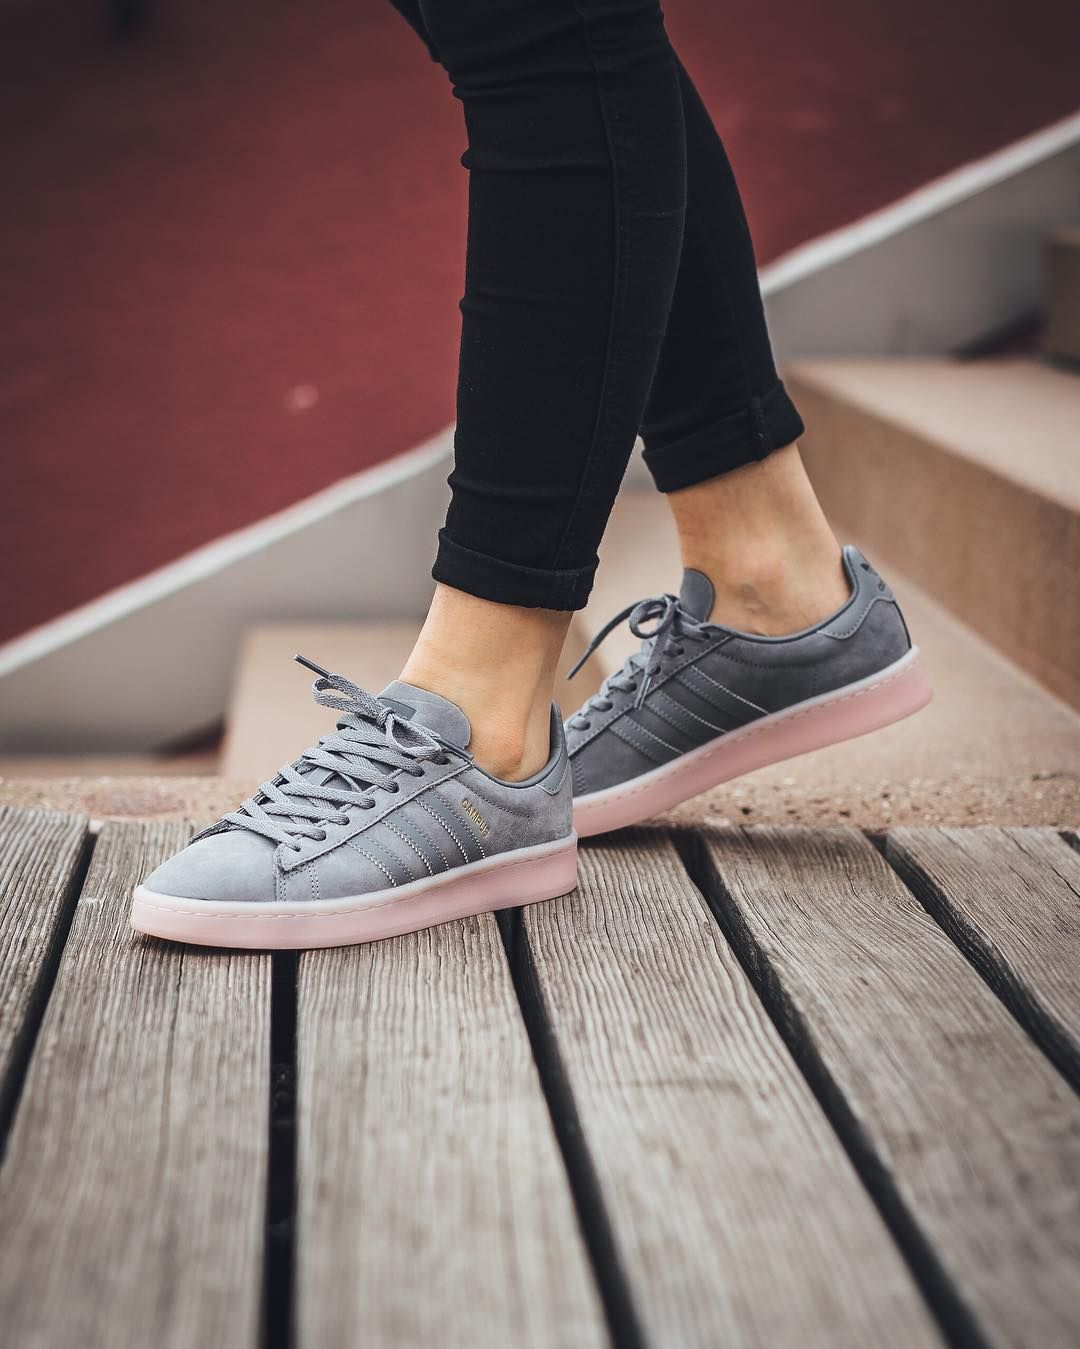 """half off c6b99 9b763 Titolo Sneaker Boutique on Instagram """"RELEASE ADIDAS Campus W"""